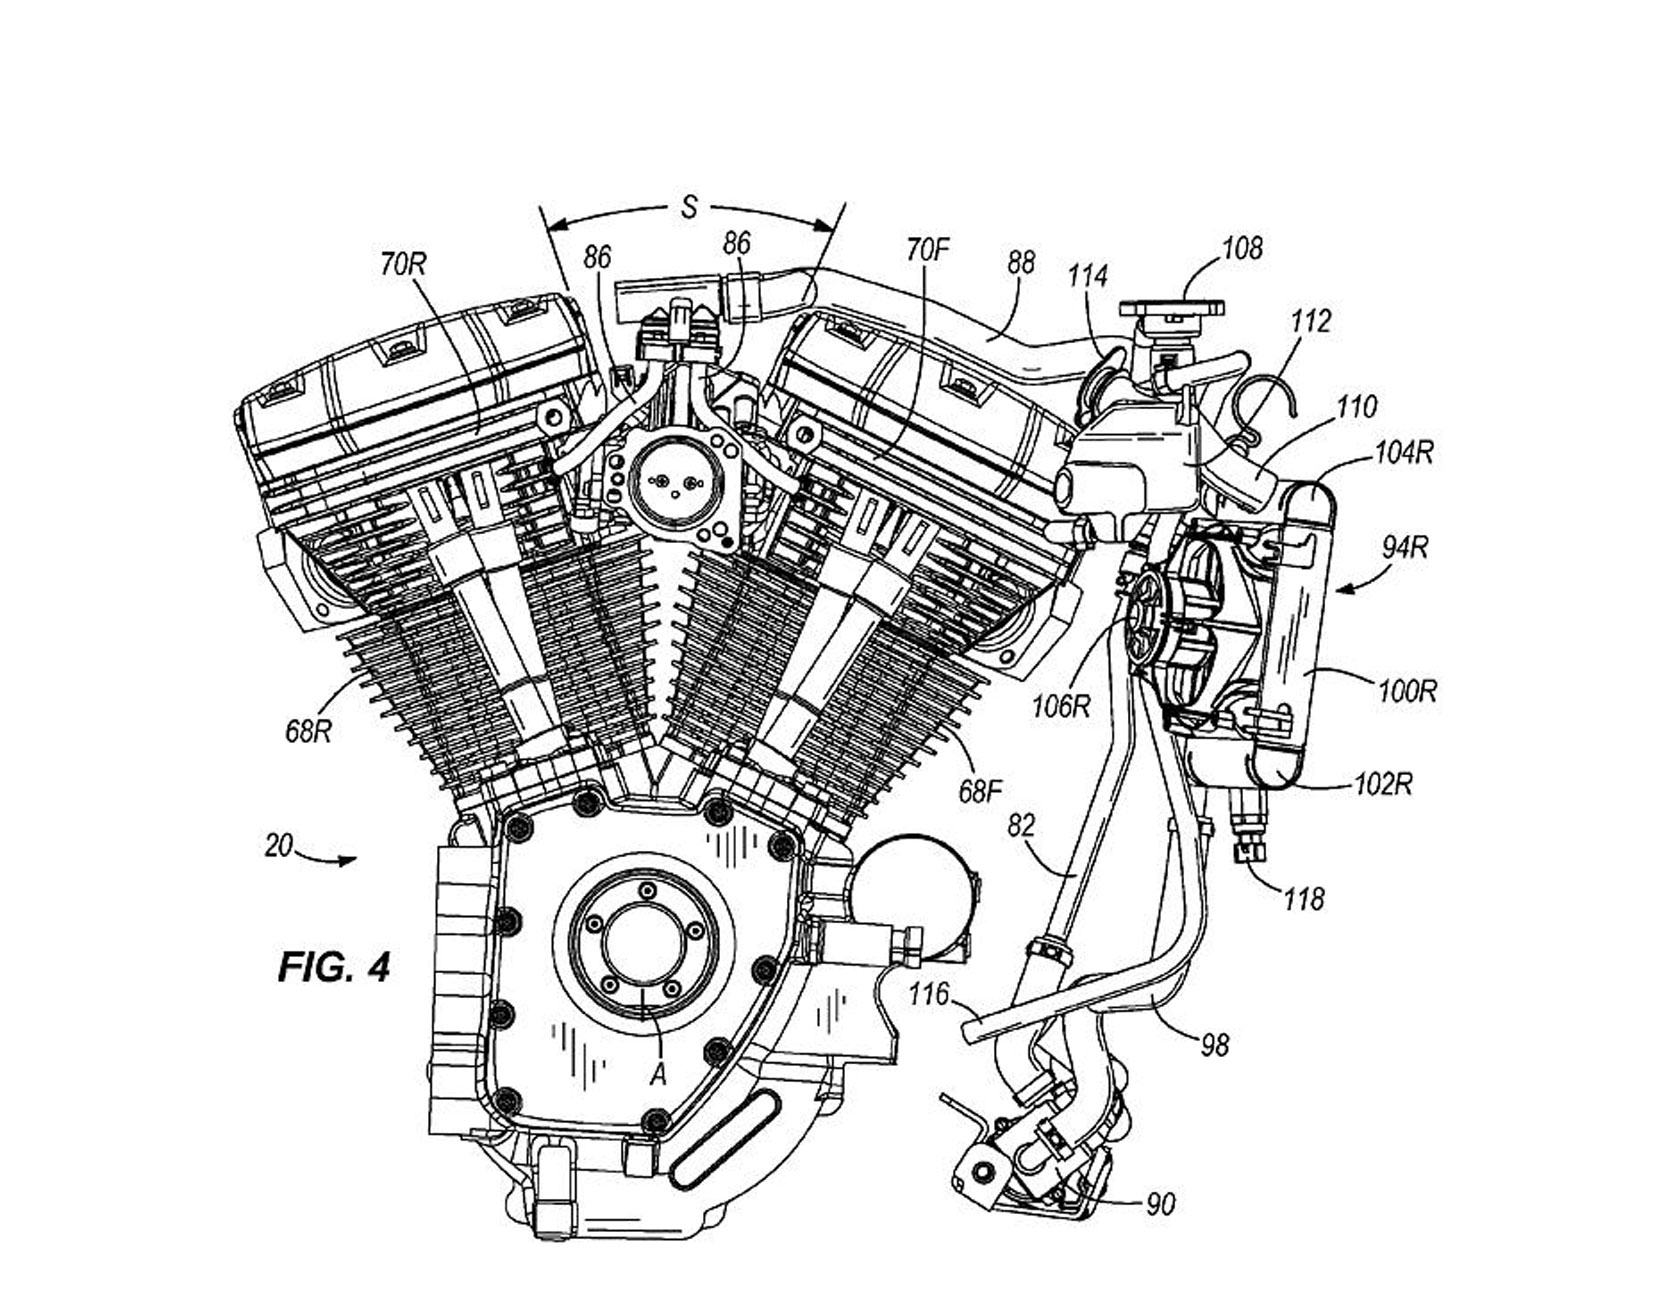 harley davidson water cooled engine us patent concept spy shots 2011 harley davidson water cooled engine us patent